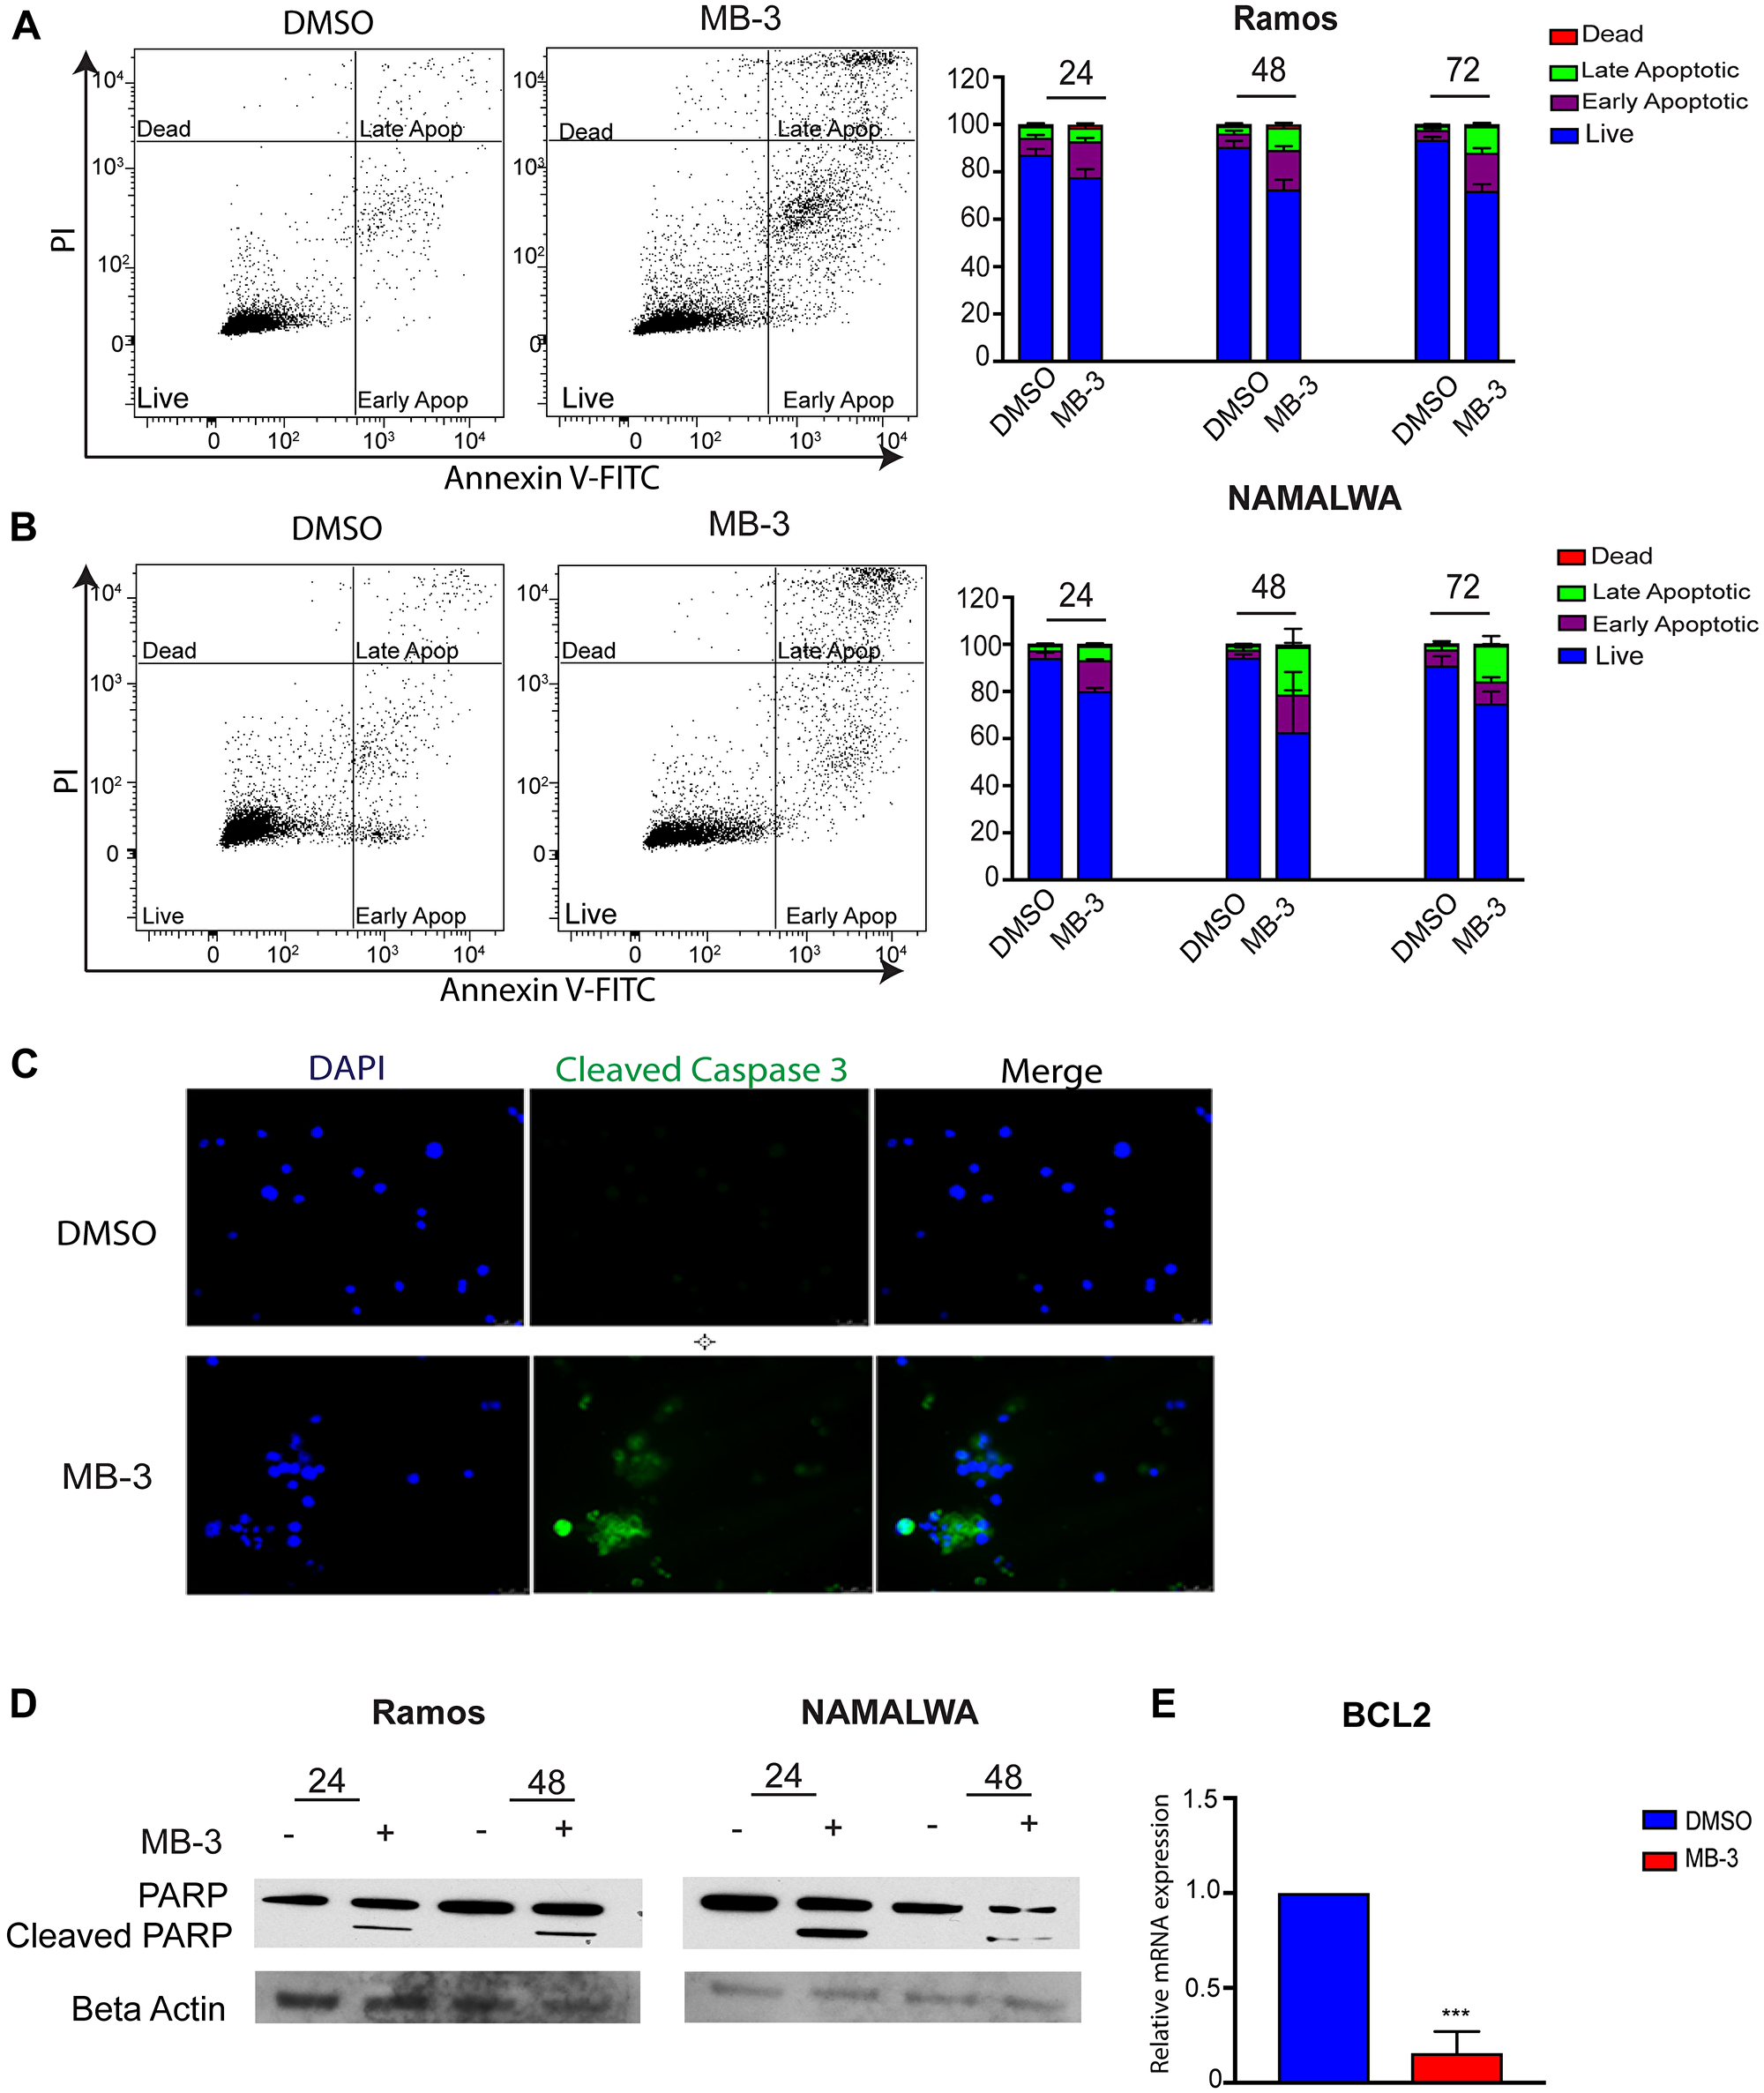 GCN5 inhibition induces apoptosis in human Burkitt lymphoma cell lines.